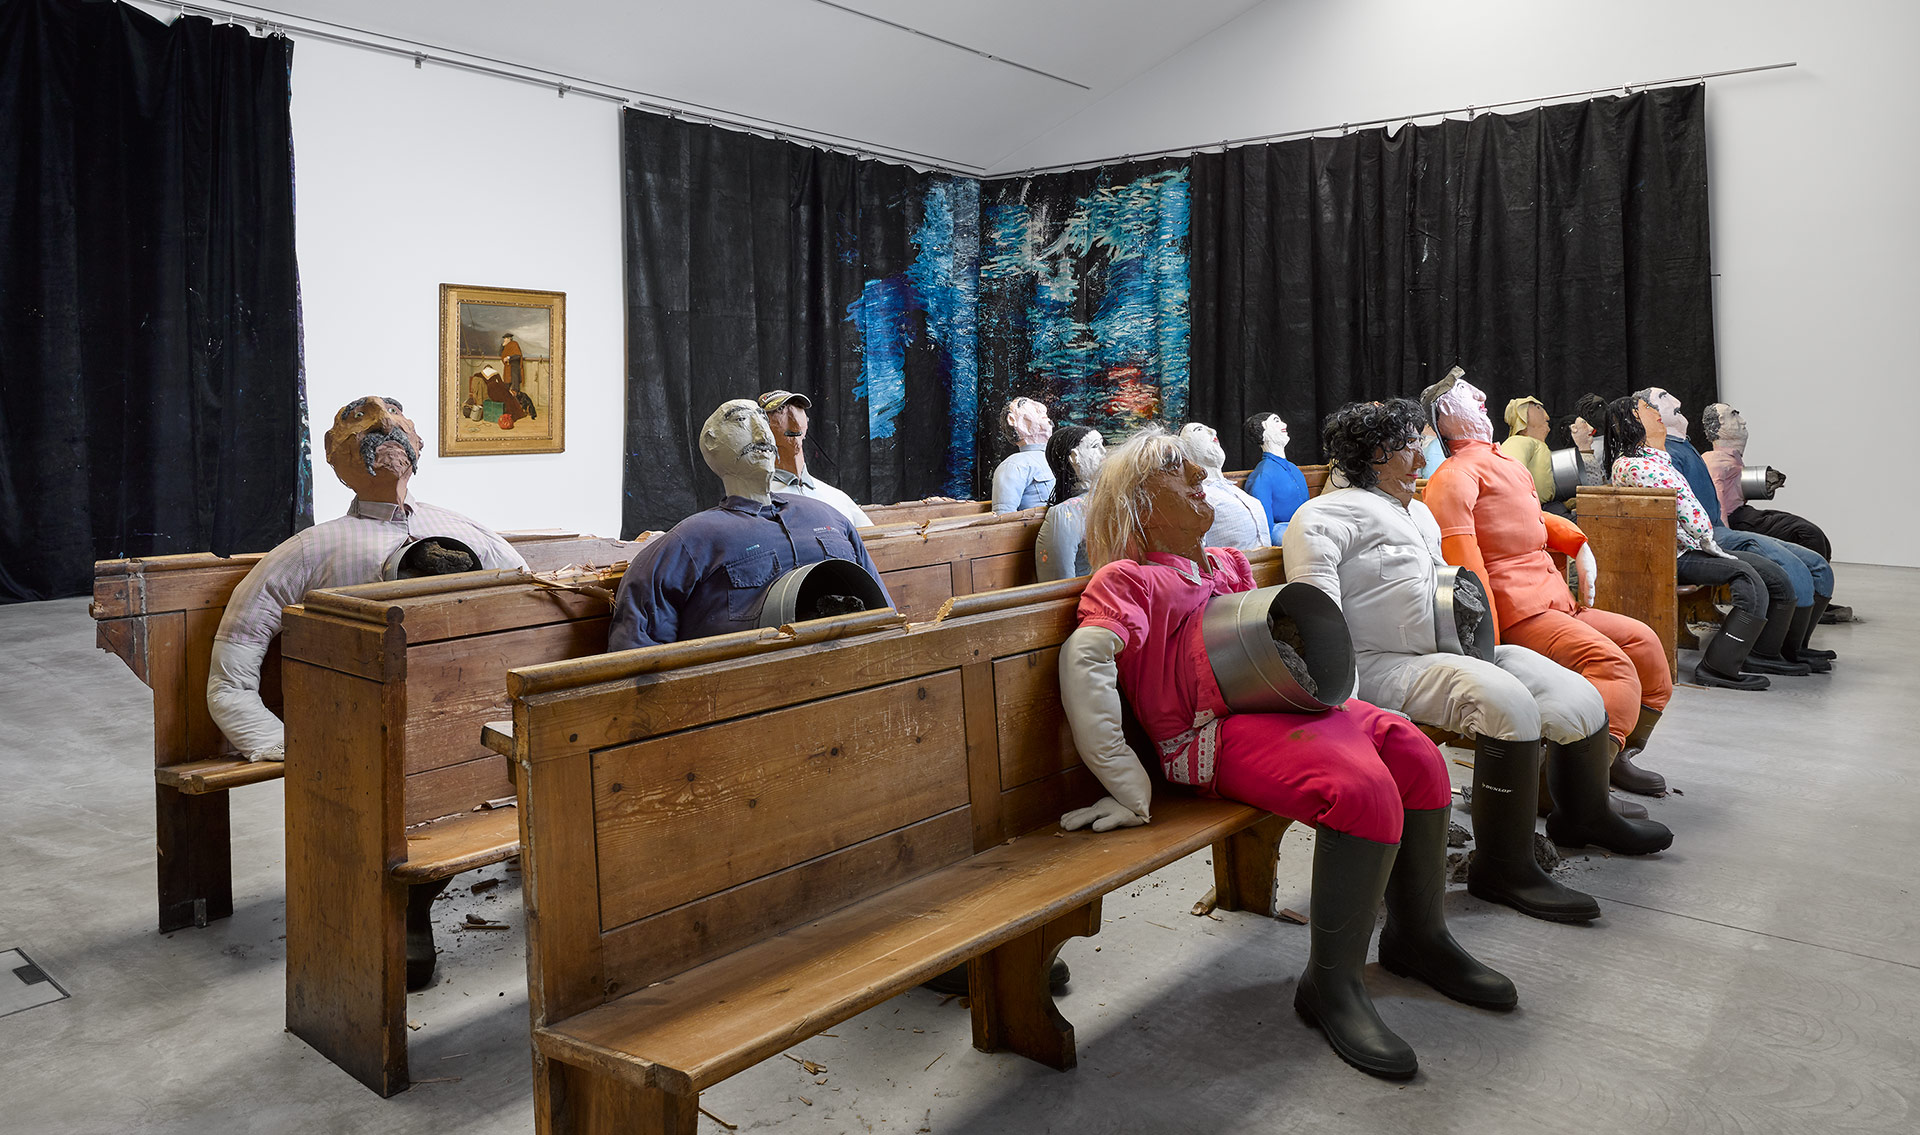 An installation view of Oscar Murillo's presentation in the 2019 Turner Prize exhibition.